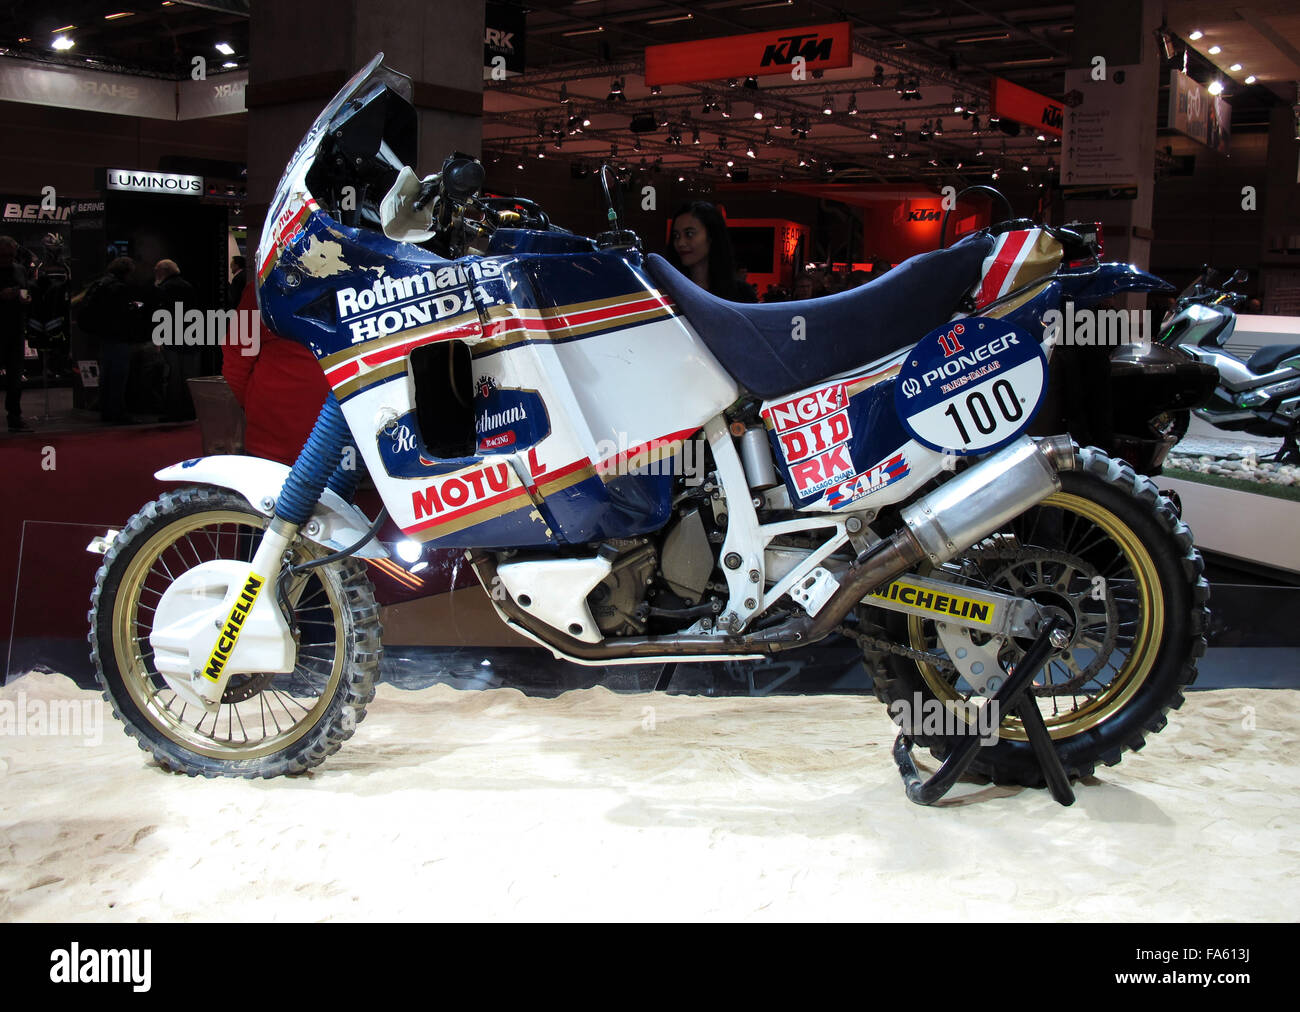 rothmans honda paris dakar rally japan paris motorcycle. Black Bedroom Furniture Sets. Home Design Ideas